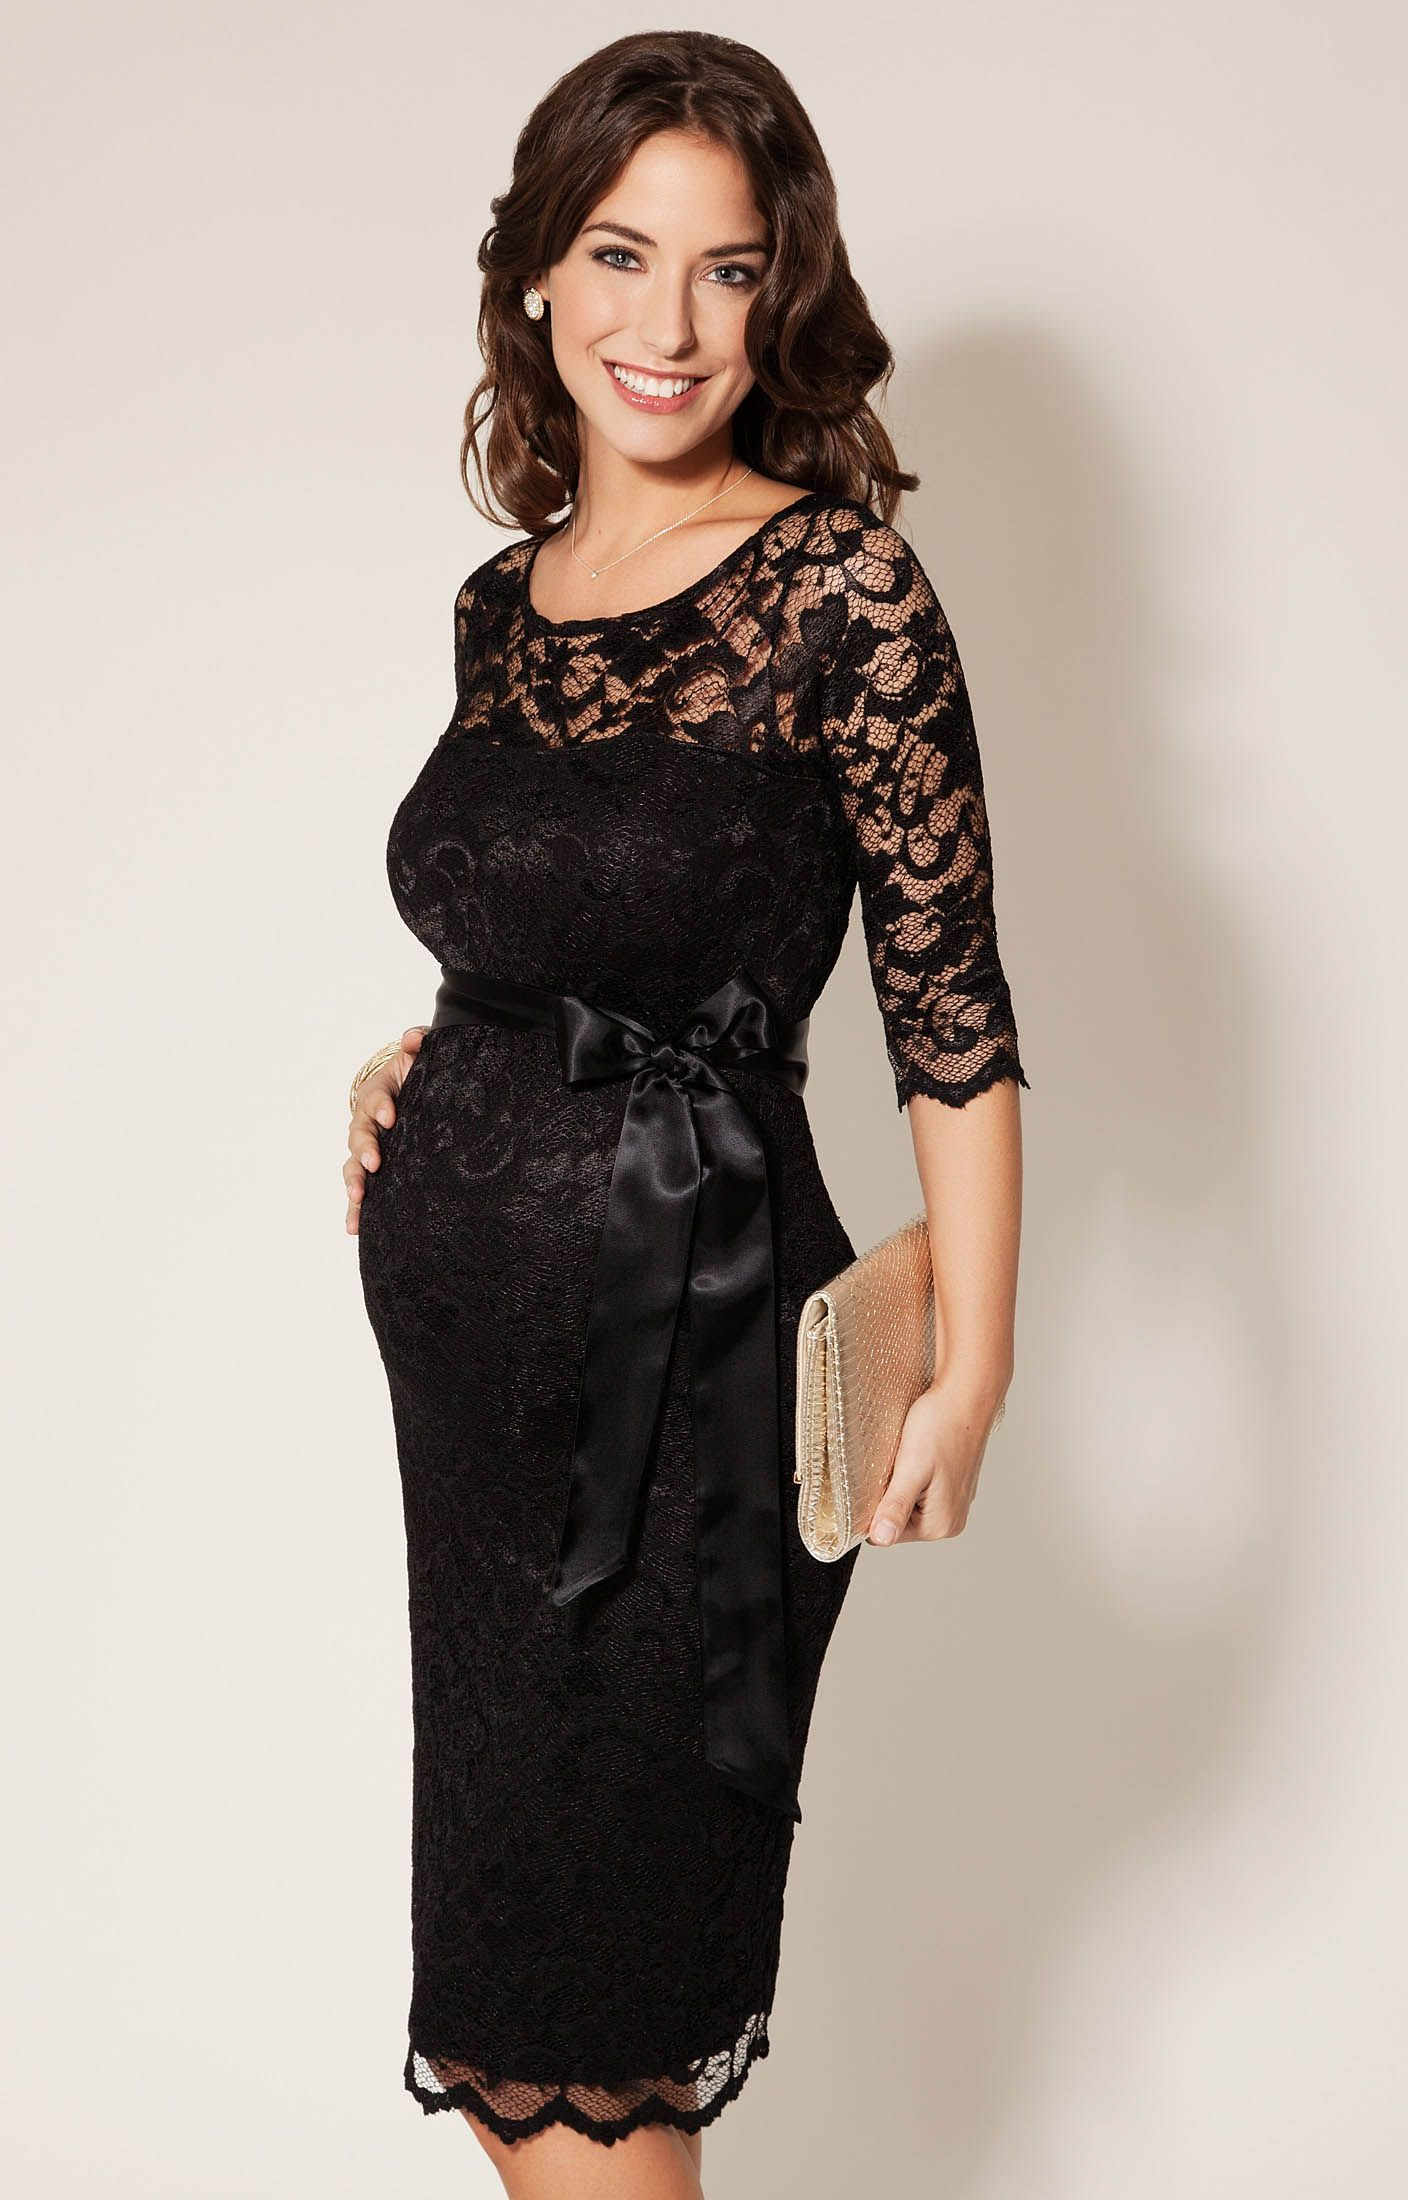 0813455b4 Amelia Lace Maternity Dress Short (Black) - Maternity Wedding Dresses,  Evening Wear and Party Clothes by Tiffany Rose